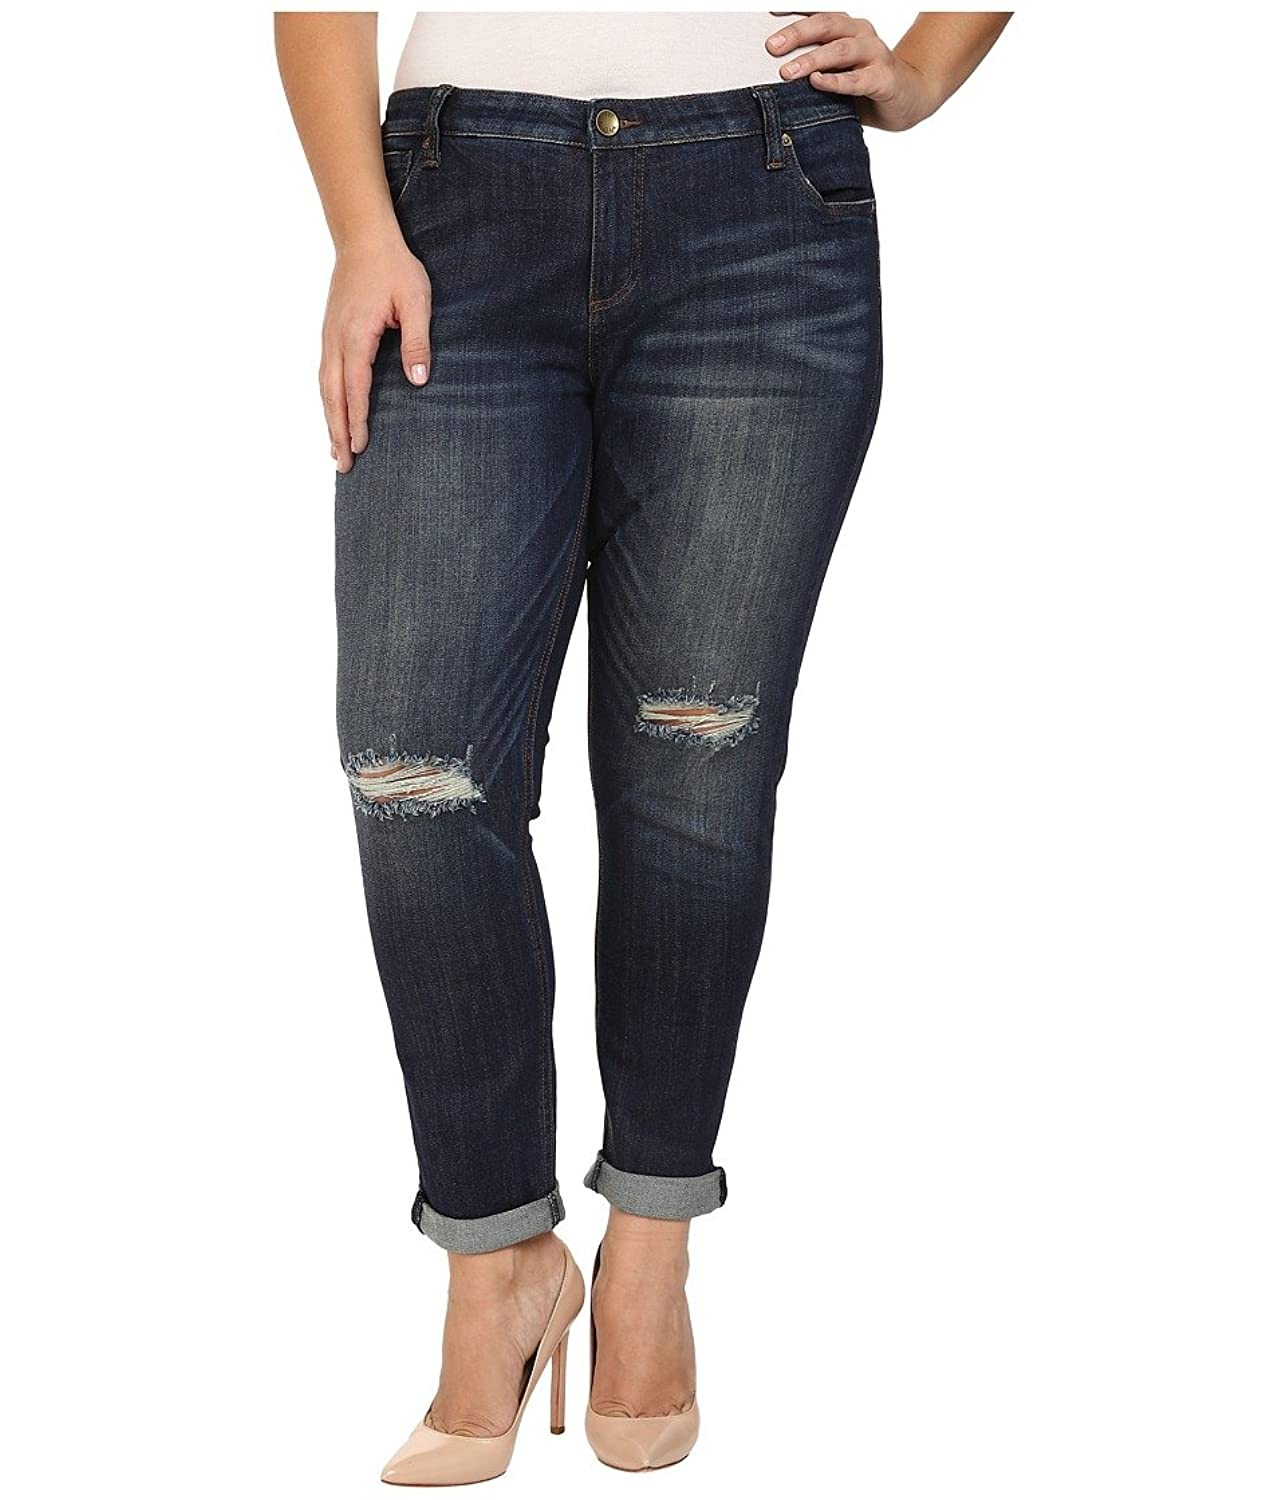 KUT from the Kloth Women's Plus Size Catherine Slouchy Boyfriend Jeans in Commitment Commitment Jeans 22W